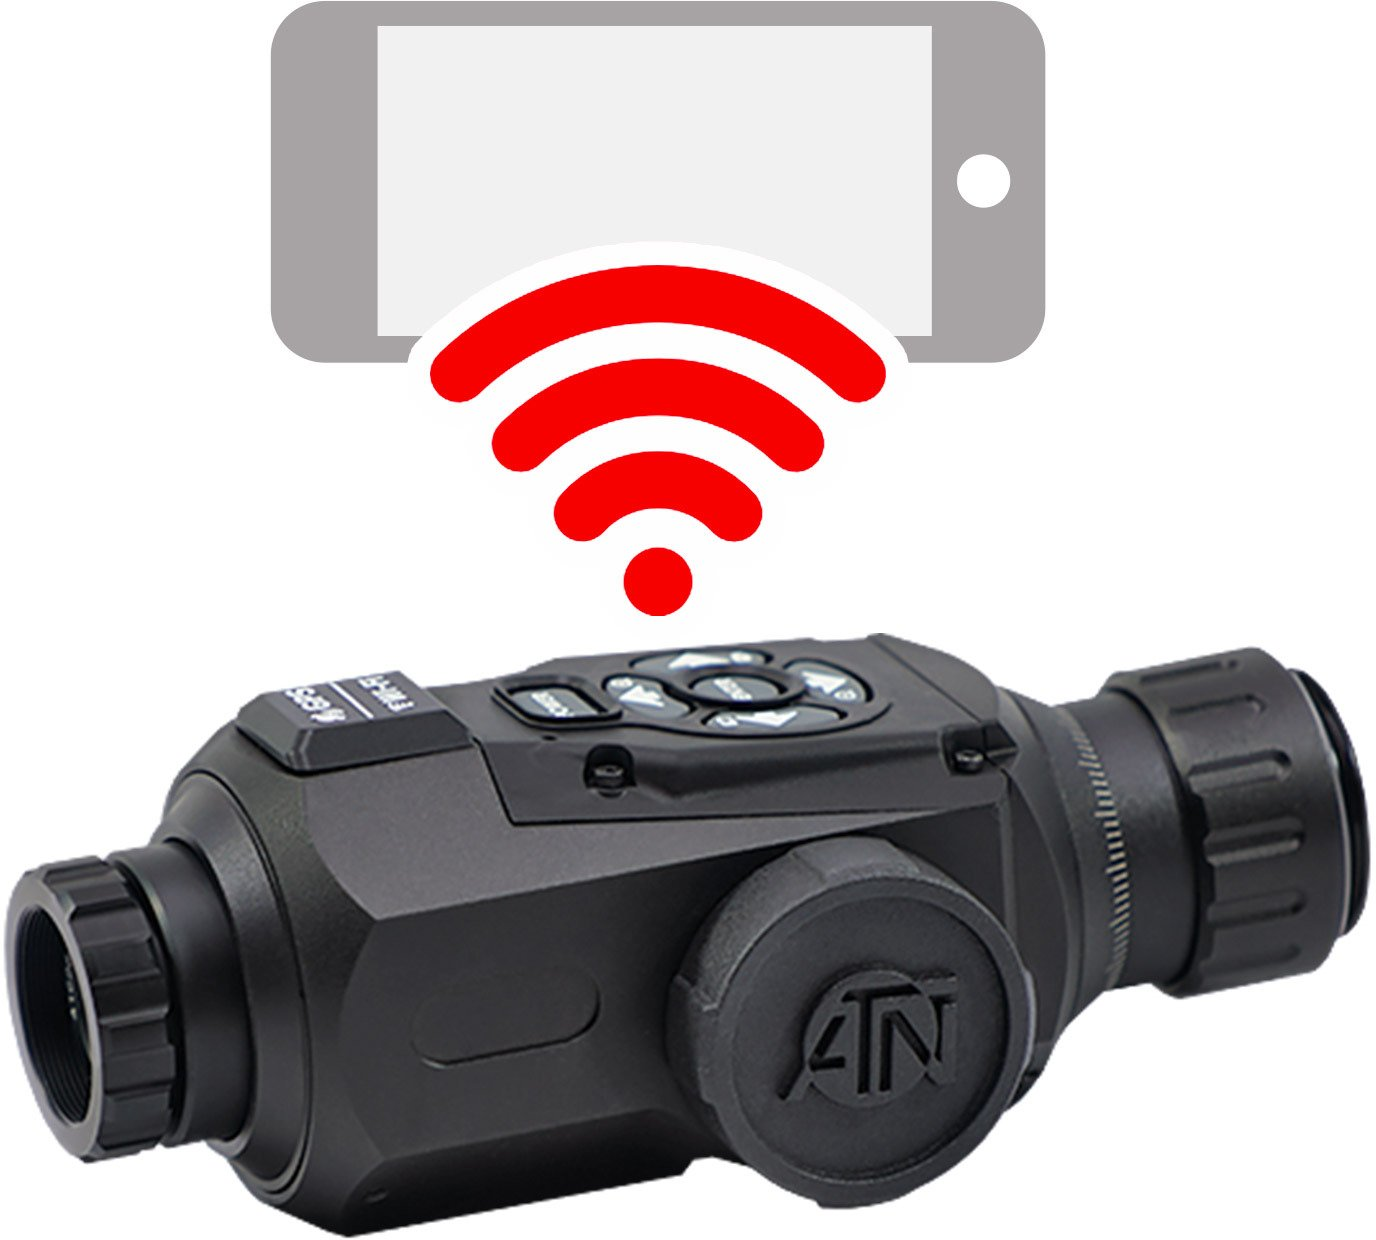 ATN OTS Smart HD 1.25 - 5 x 19 Thermal Monocular - view number 1